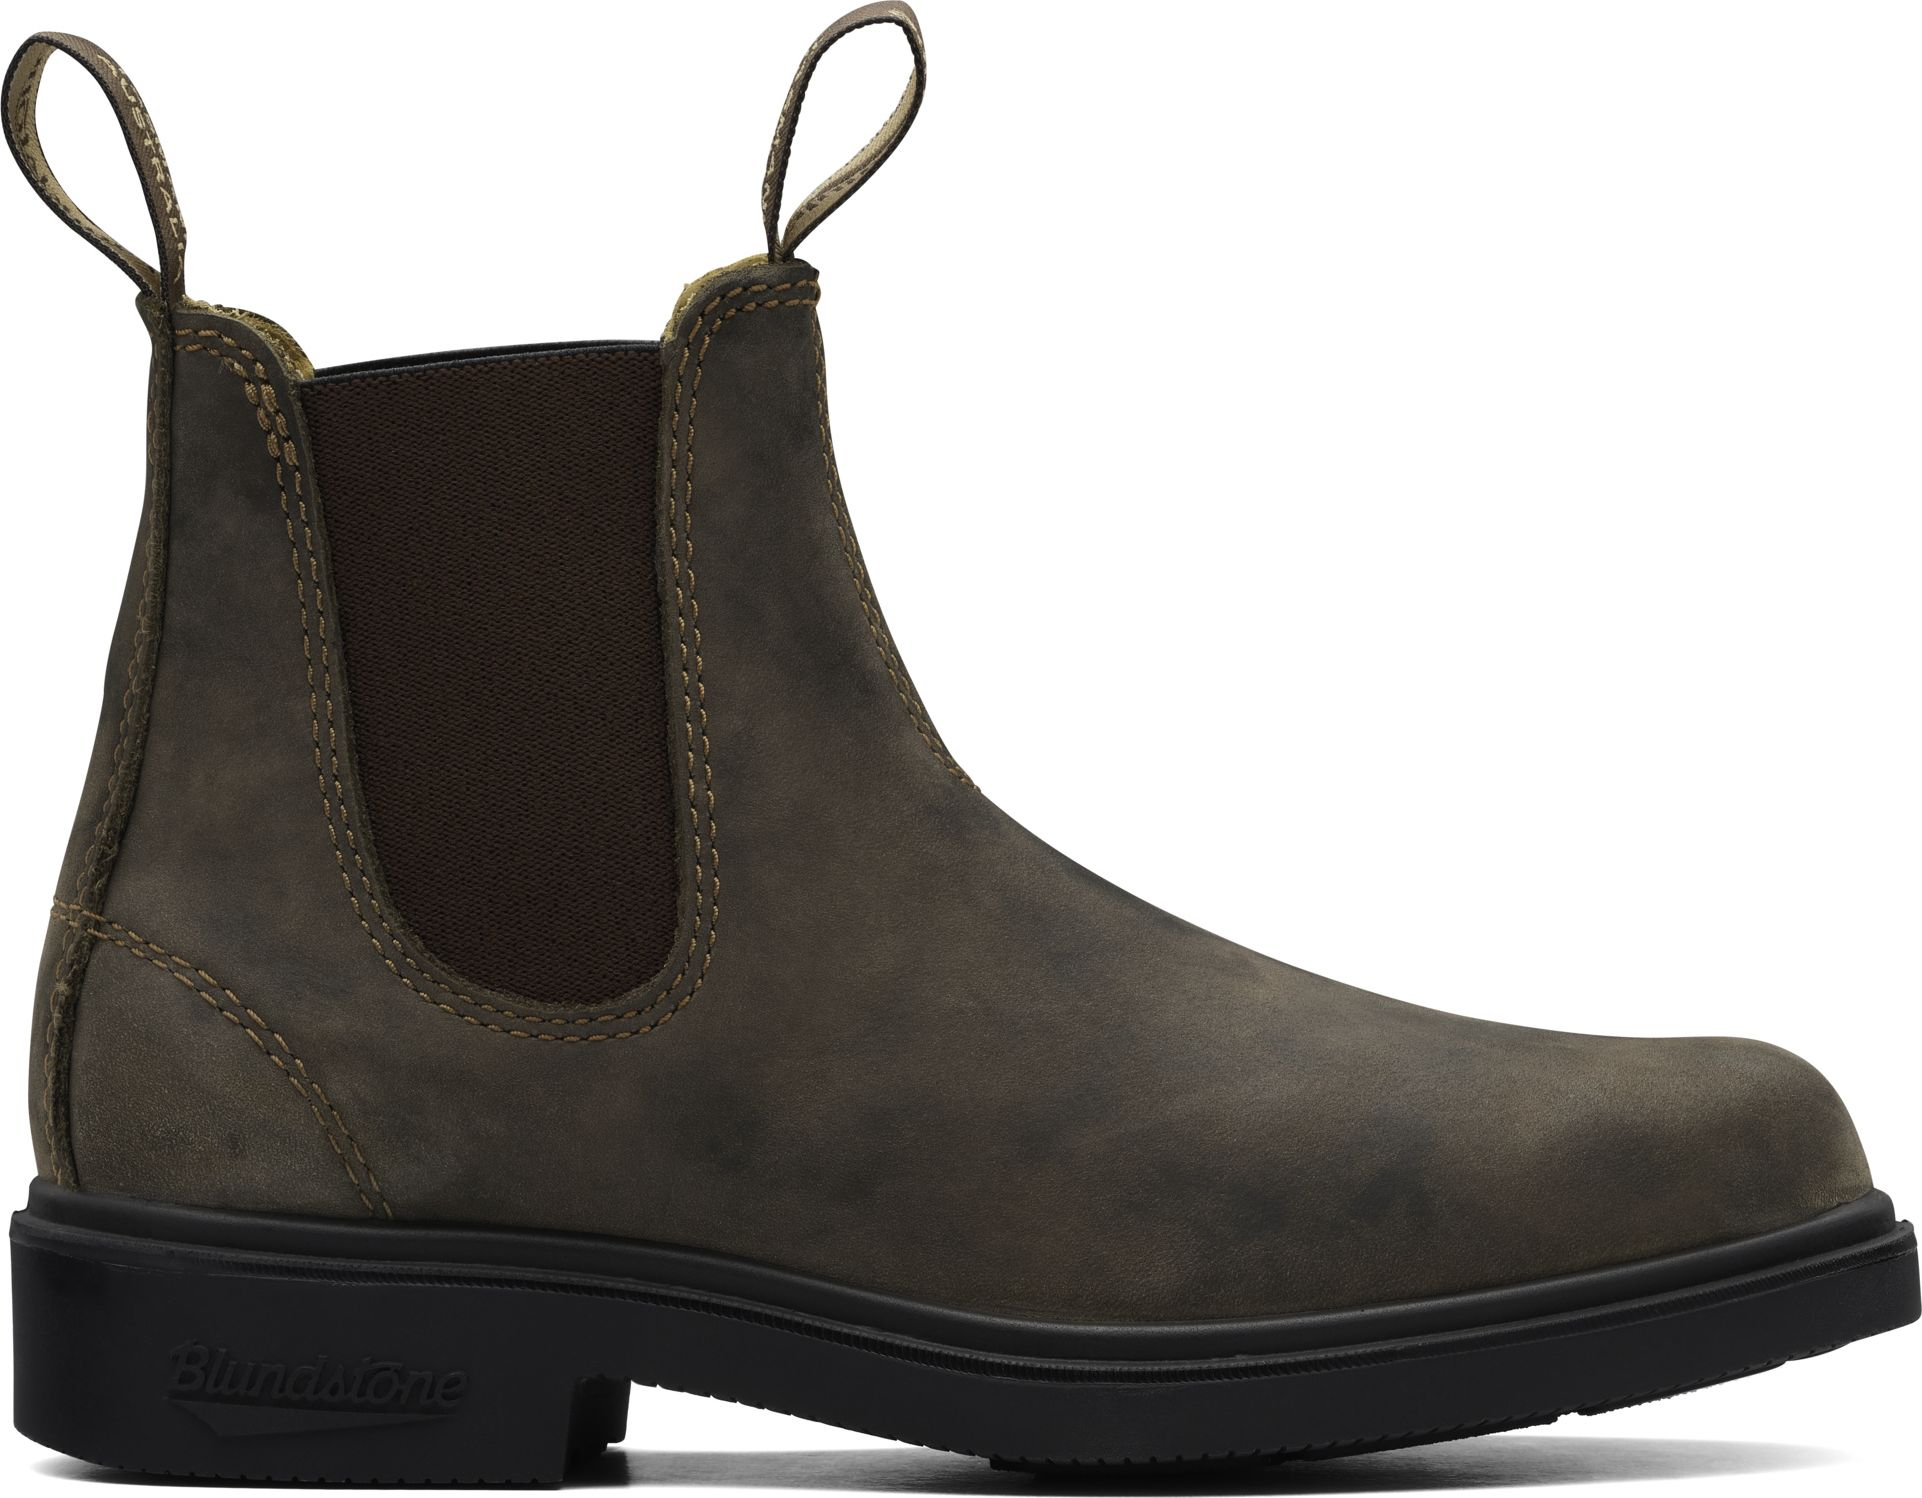 Blundstone 1306 Brown 41